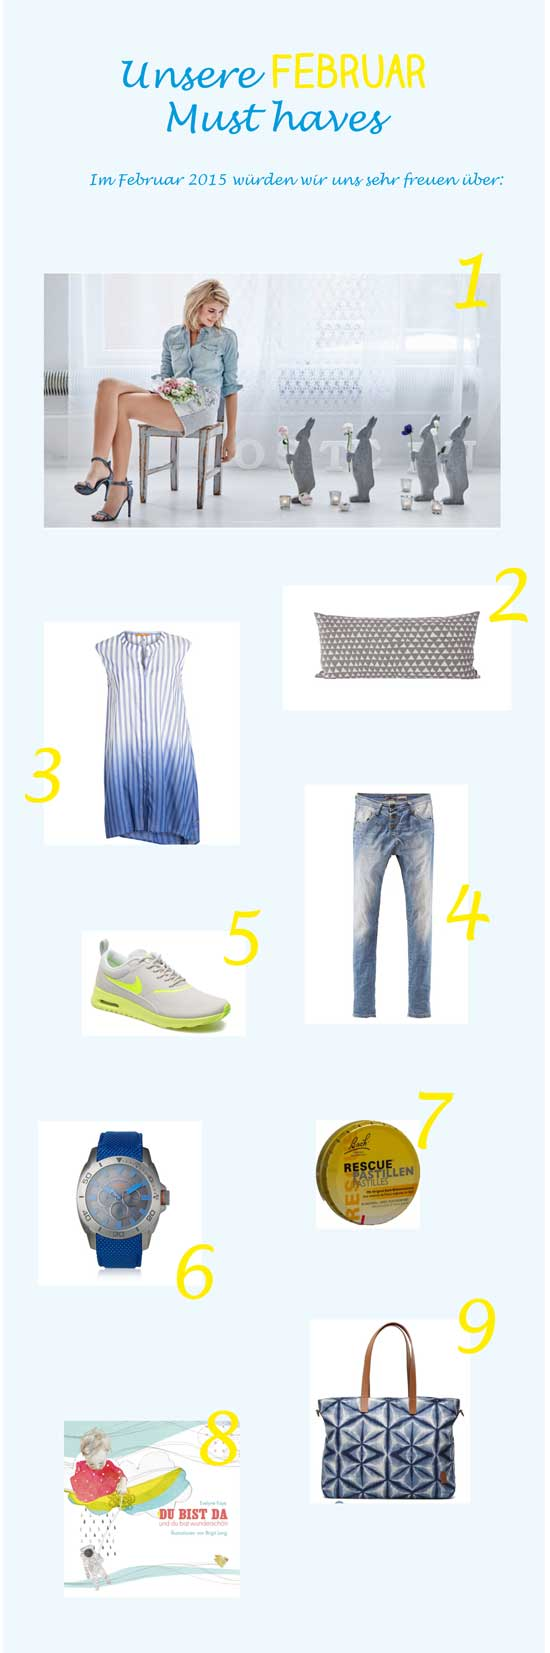 Februar-Must-haves-2015hellblau